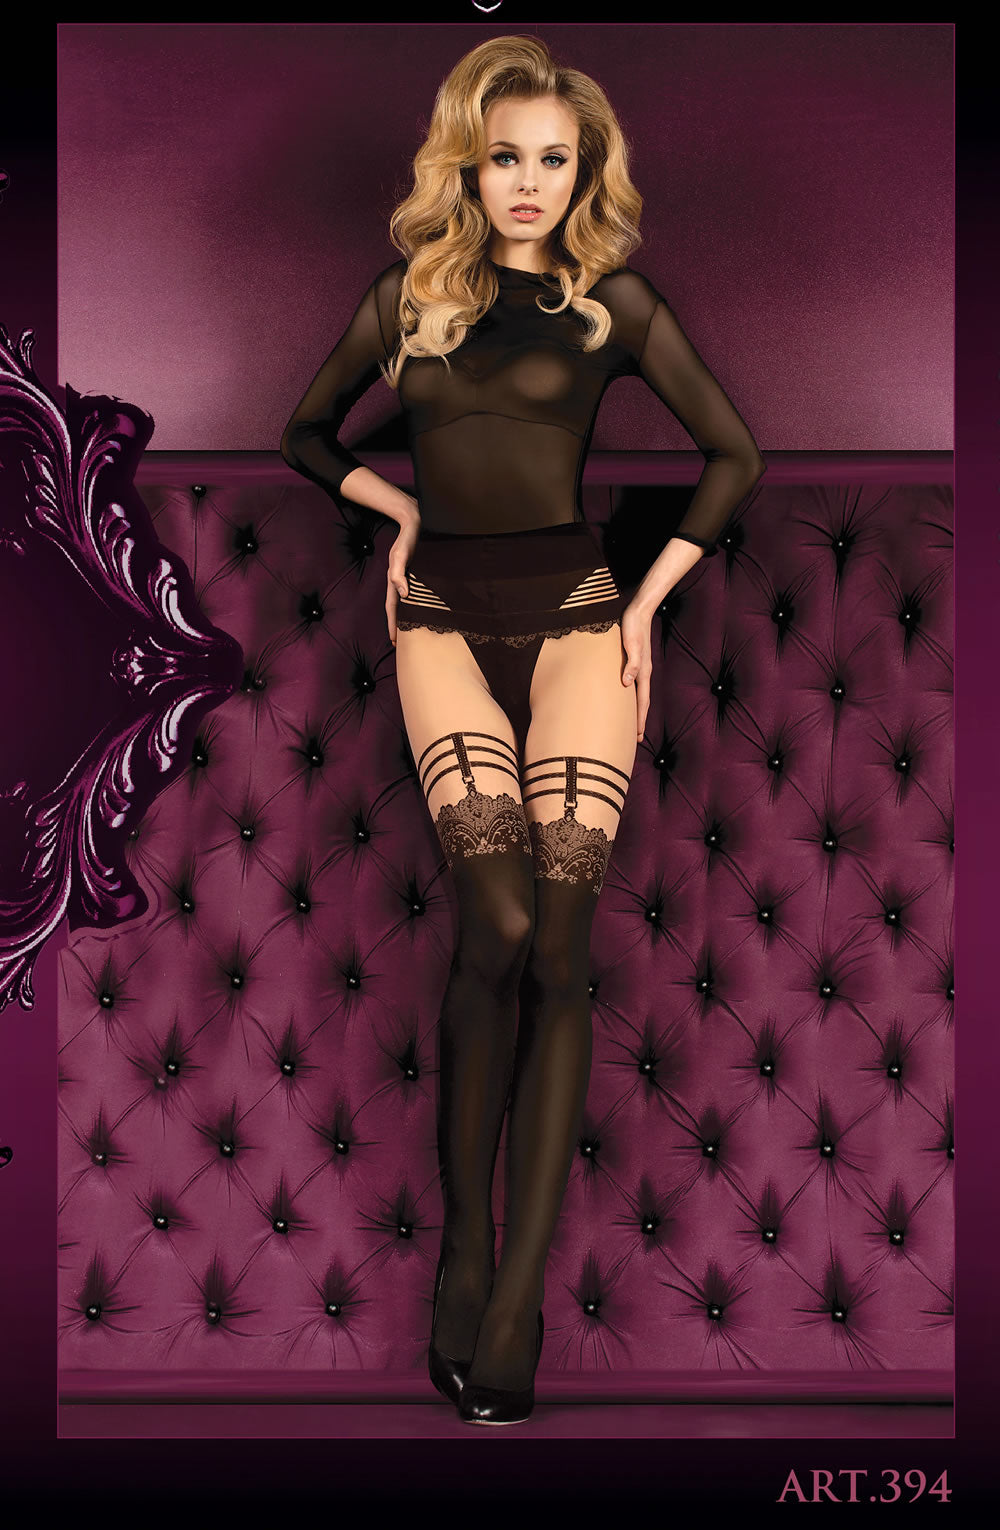 BALLERINA 394 Skin/Nero (Black)  - So Luxe